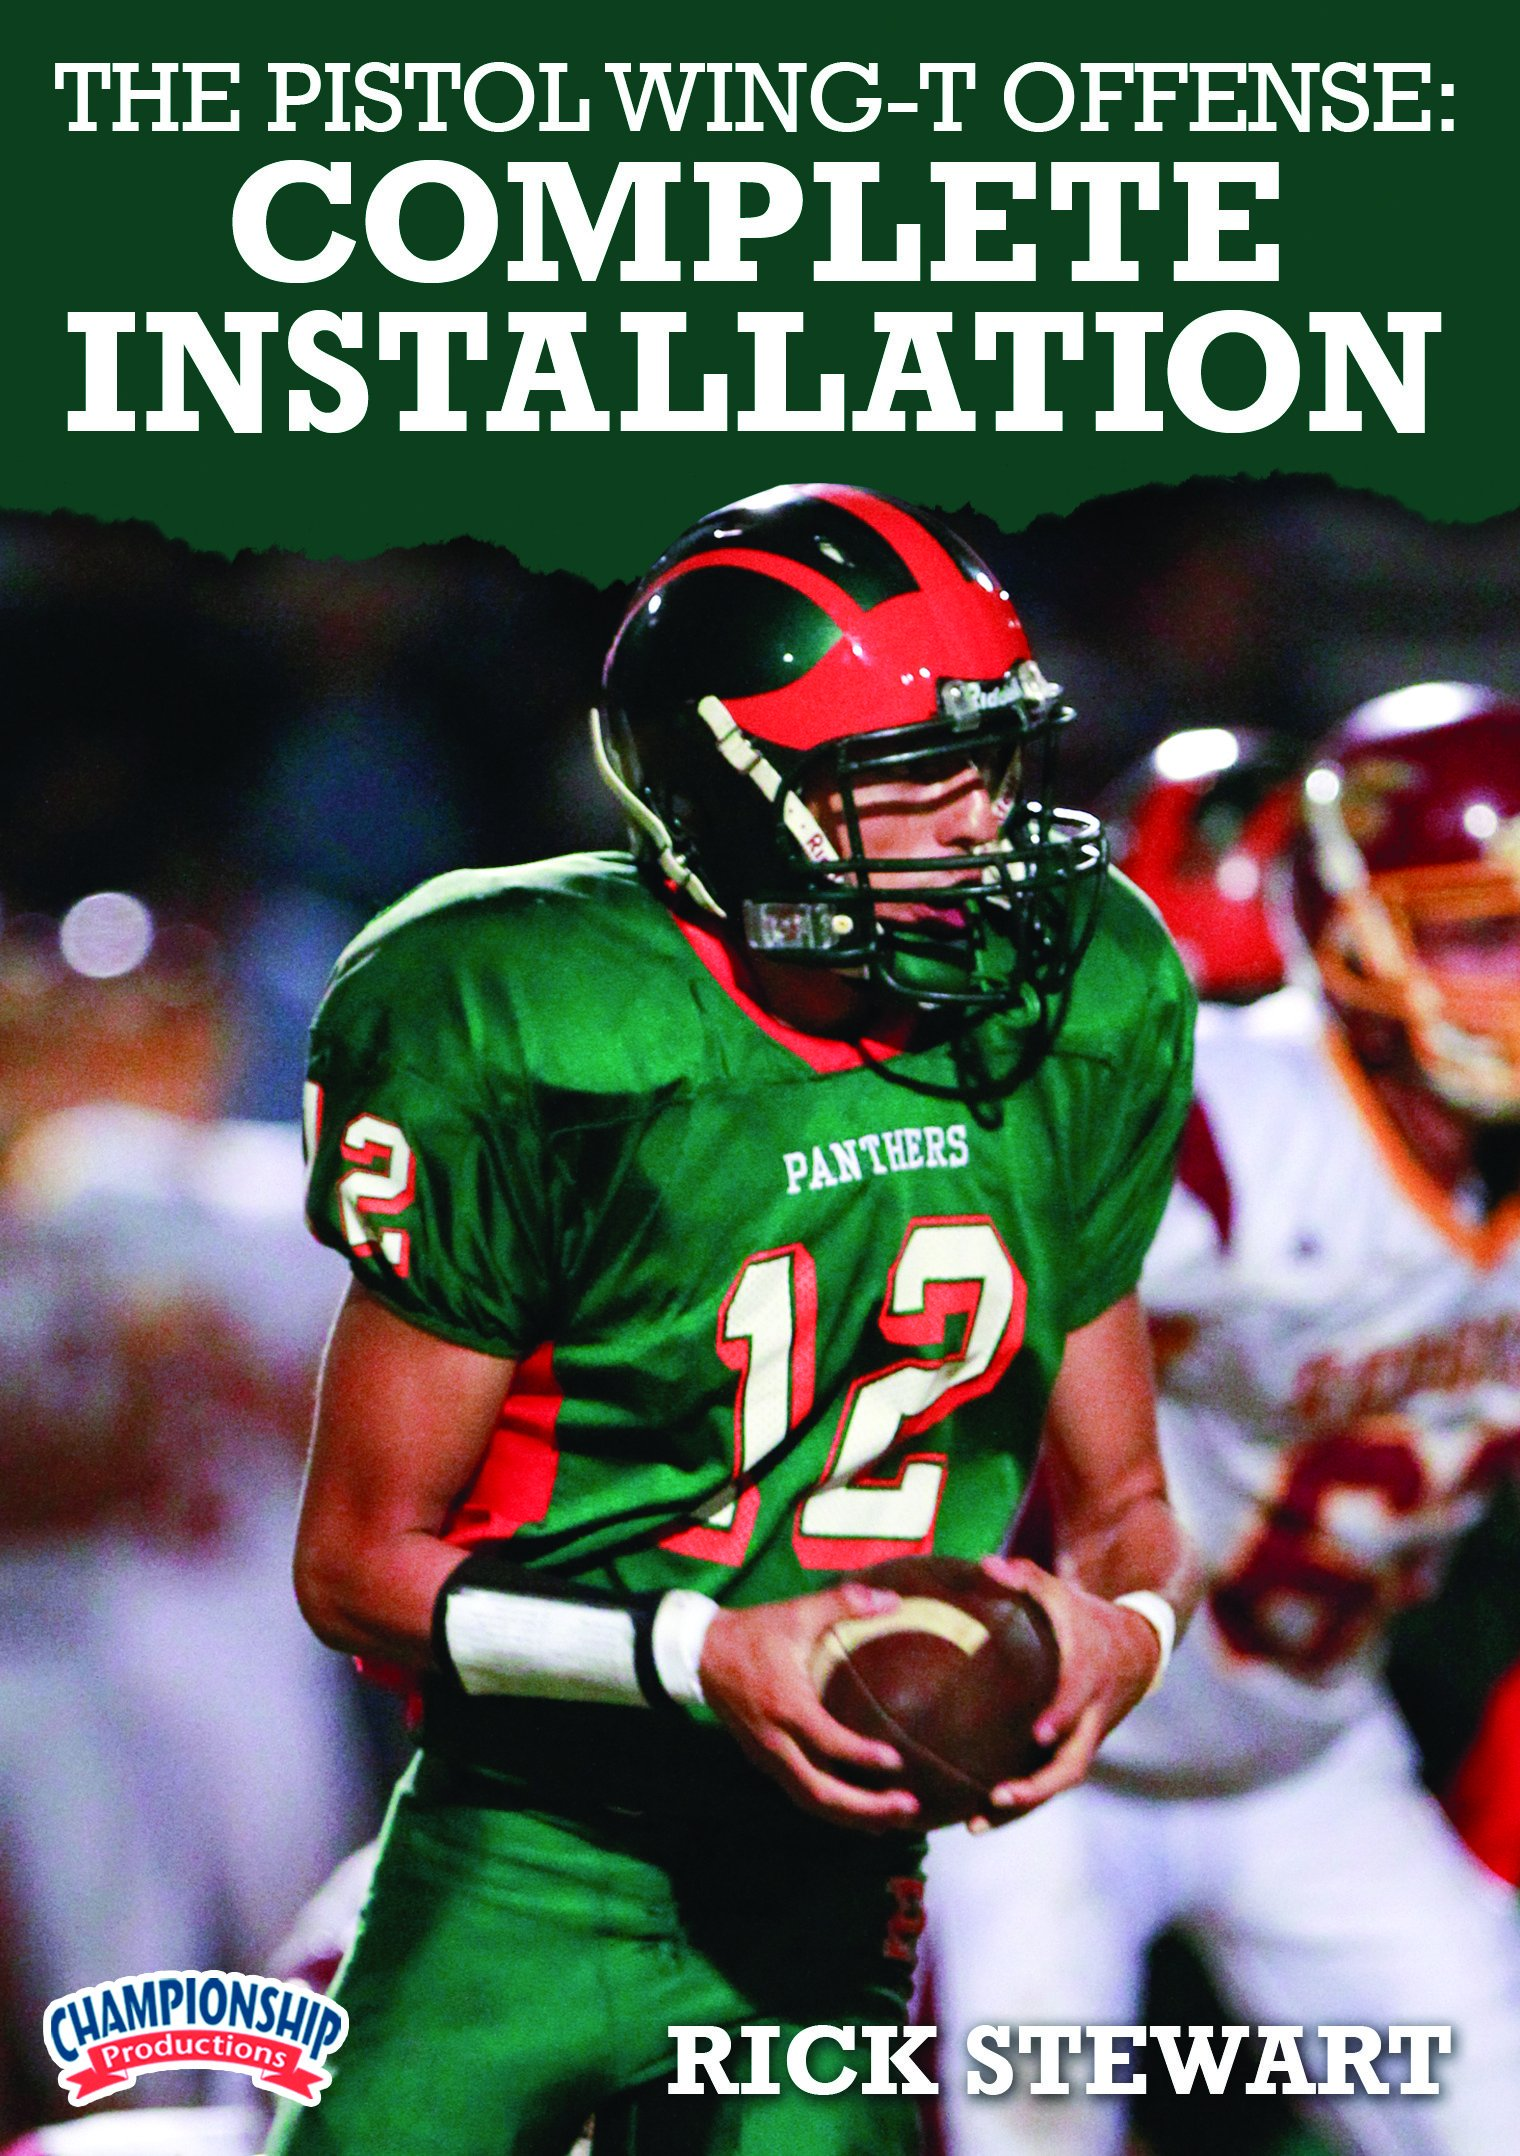 Championship Productions Rick Stewart-The Pistol Wing-T Offense: Complete Installation DVD